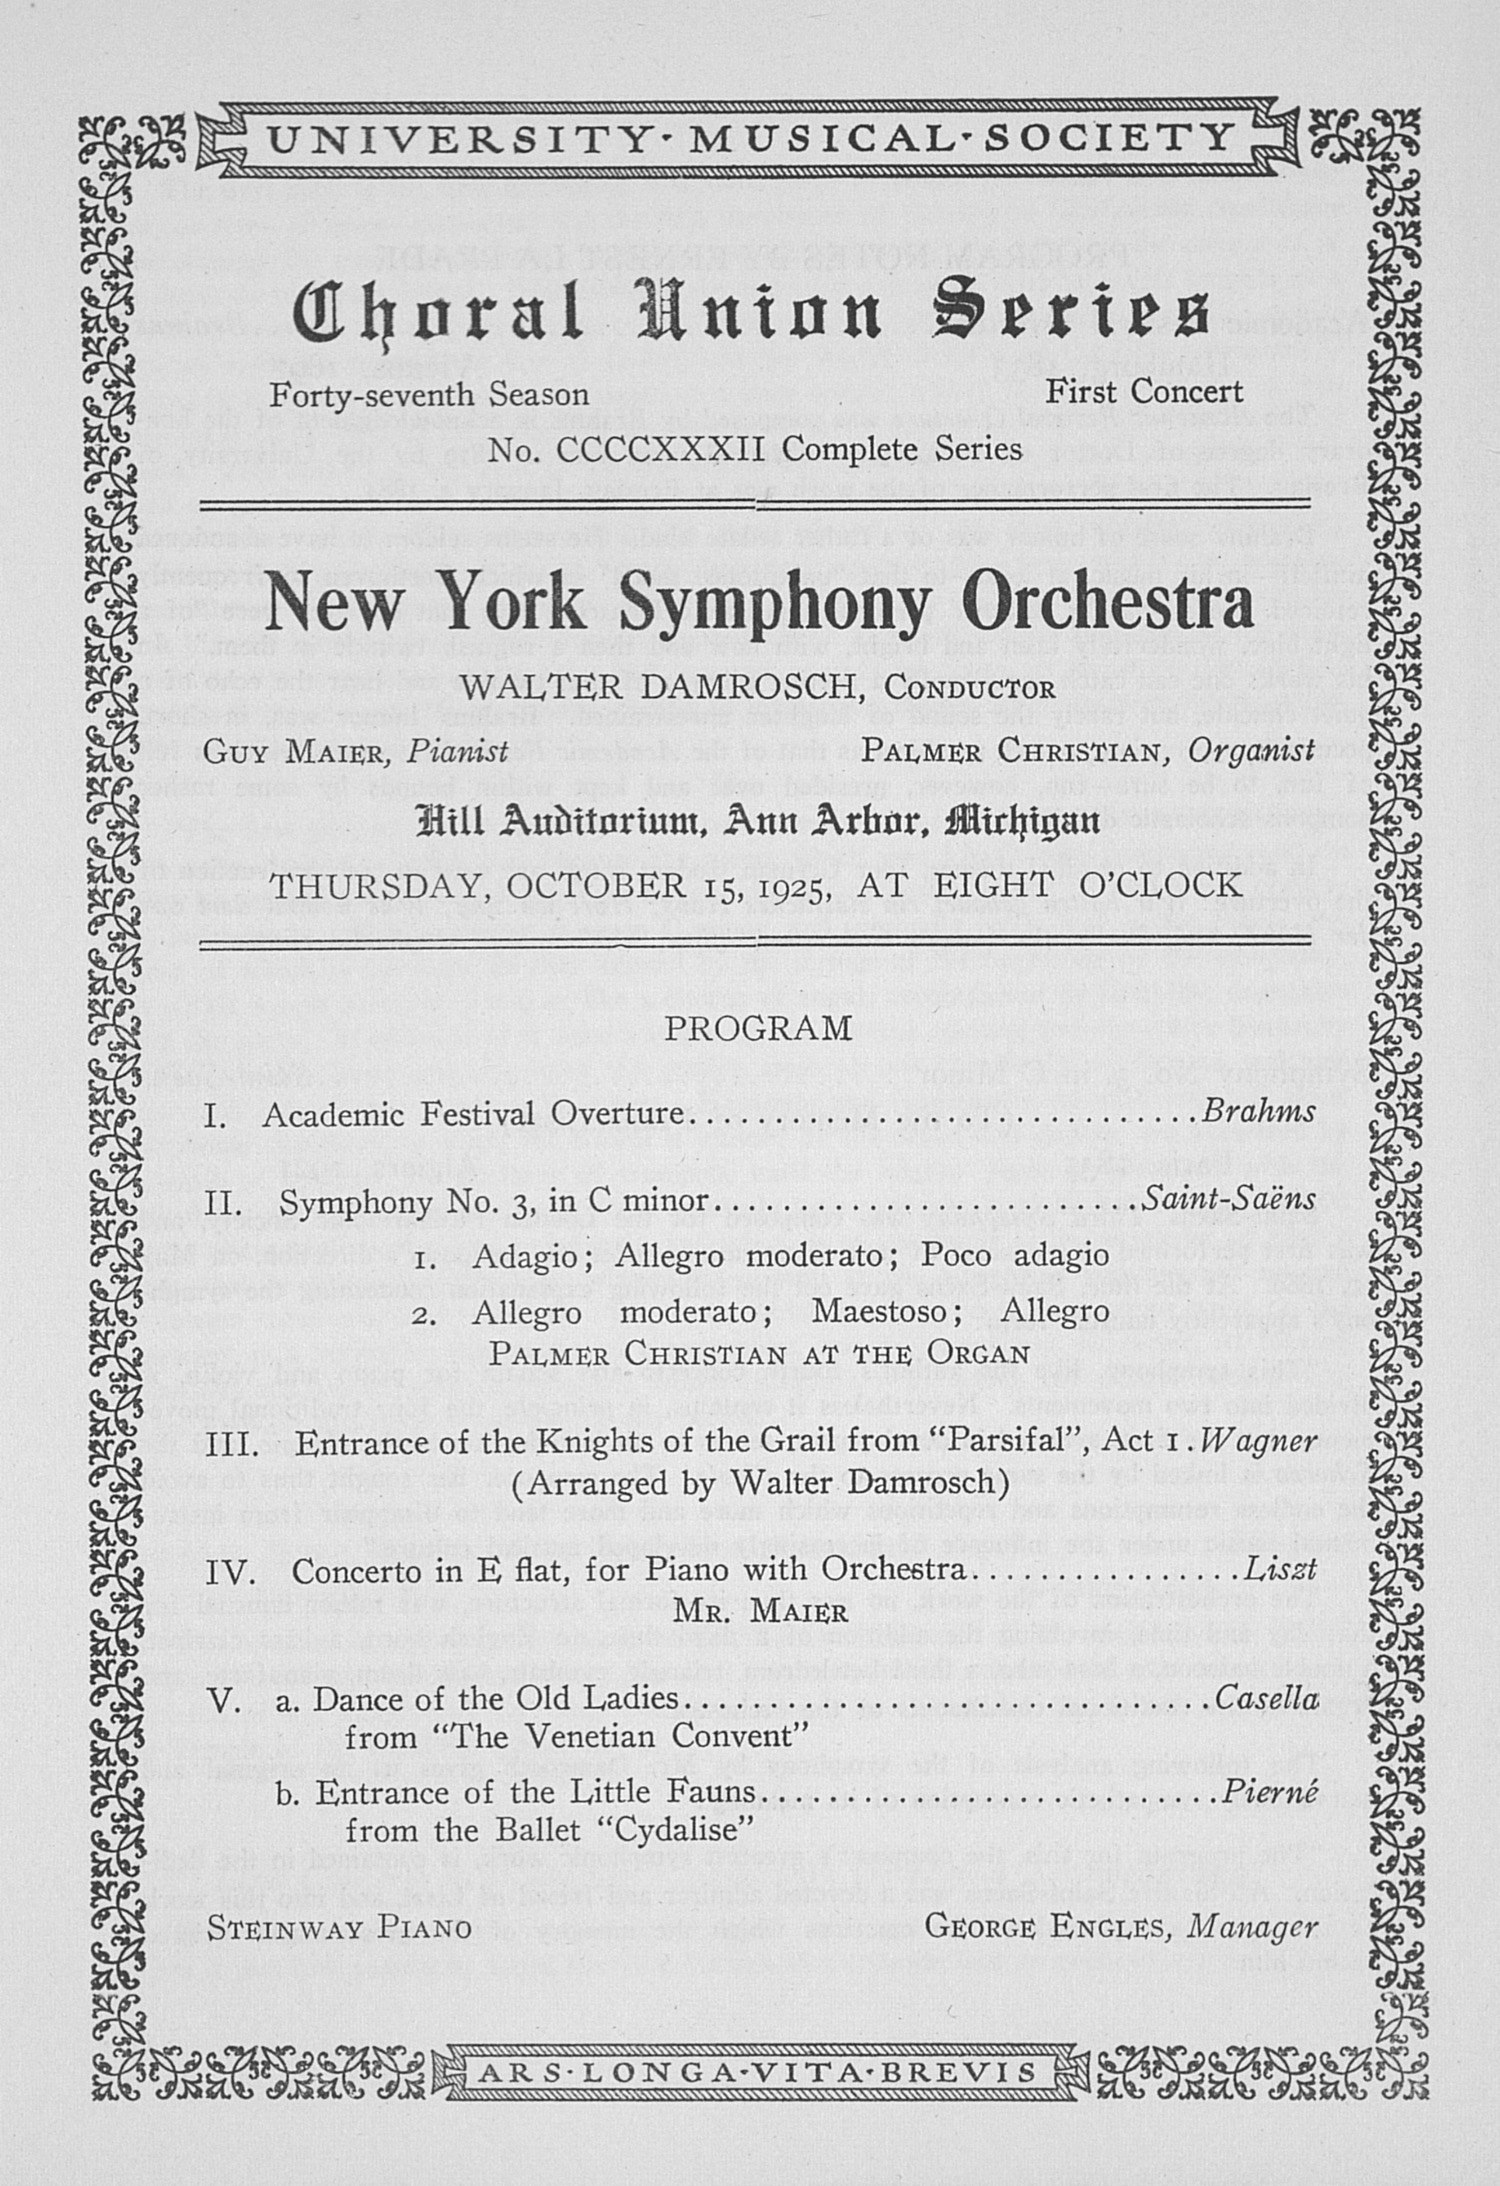 UMS Concert Program, October 15, 1925: Choral Union Series -- New York Symphony Orchestra image